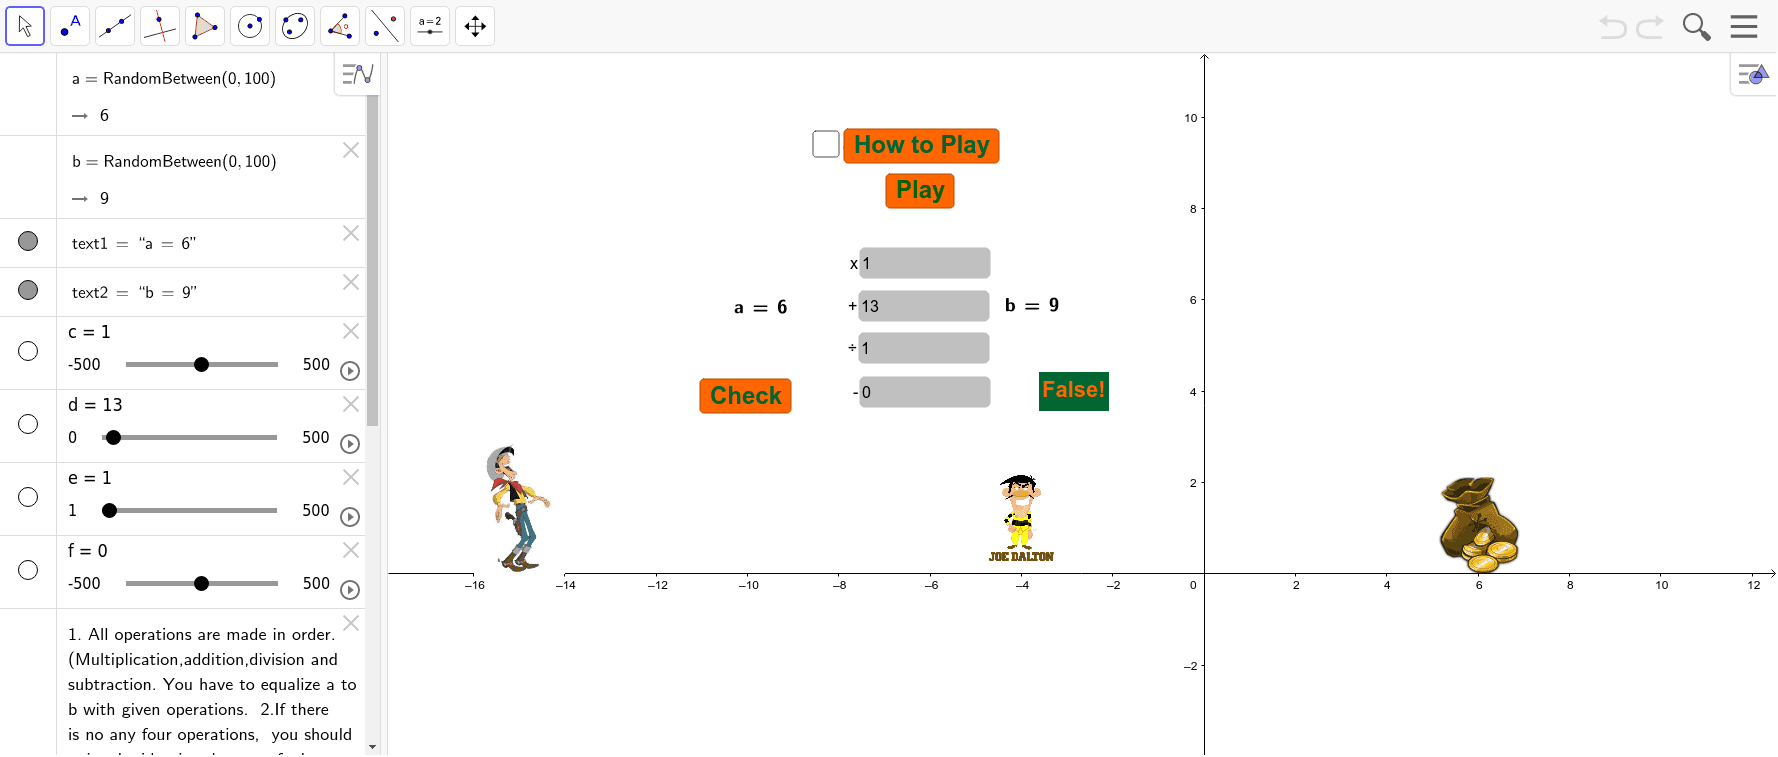 game characters Press Enter to start activity